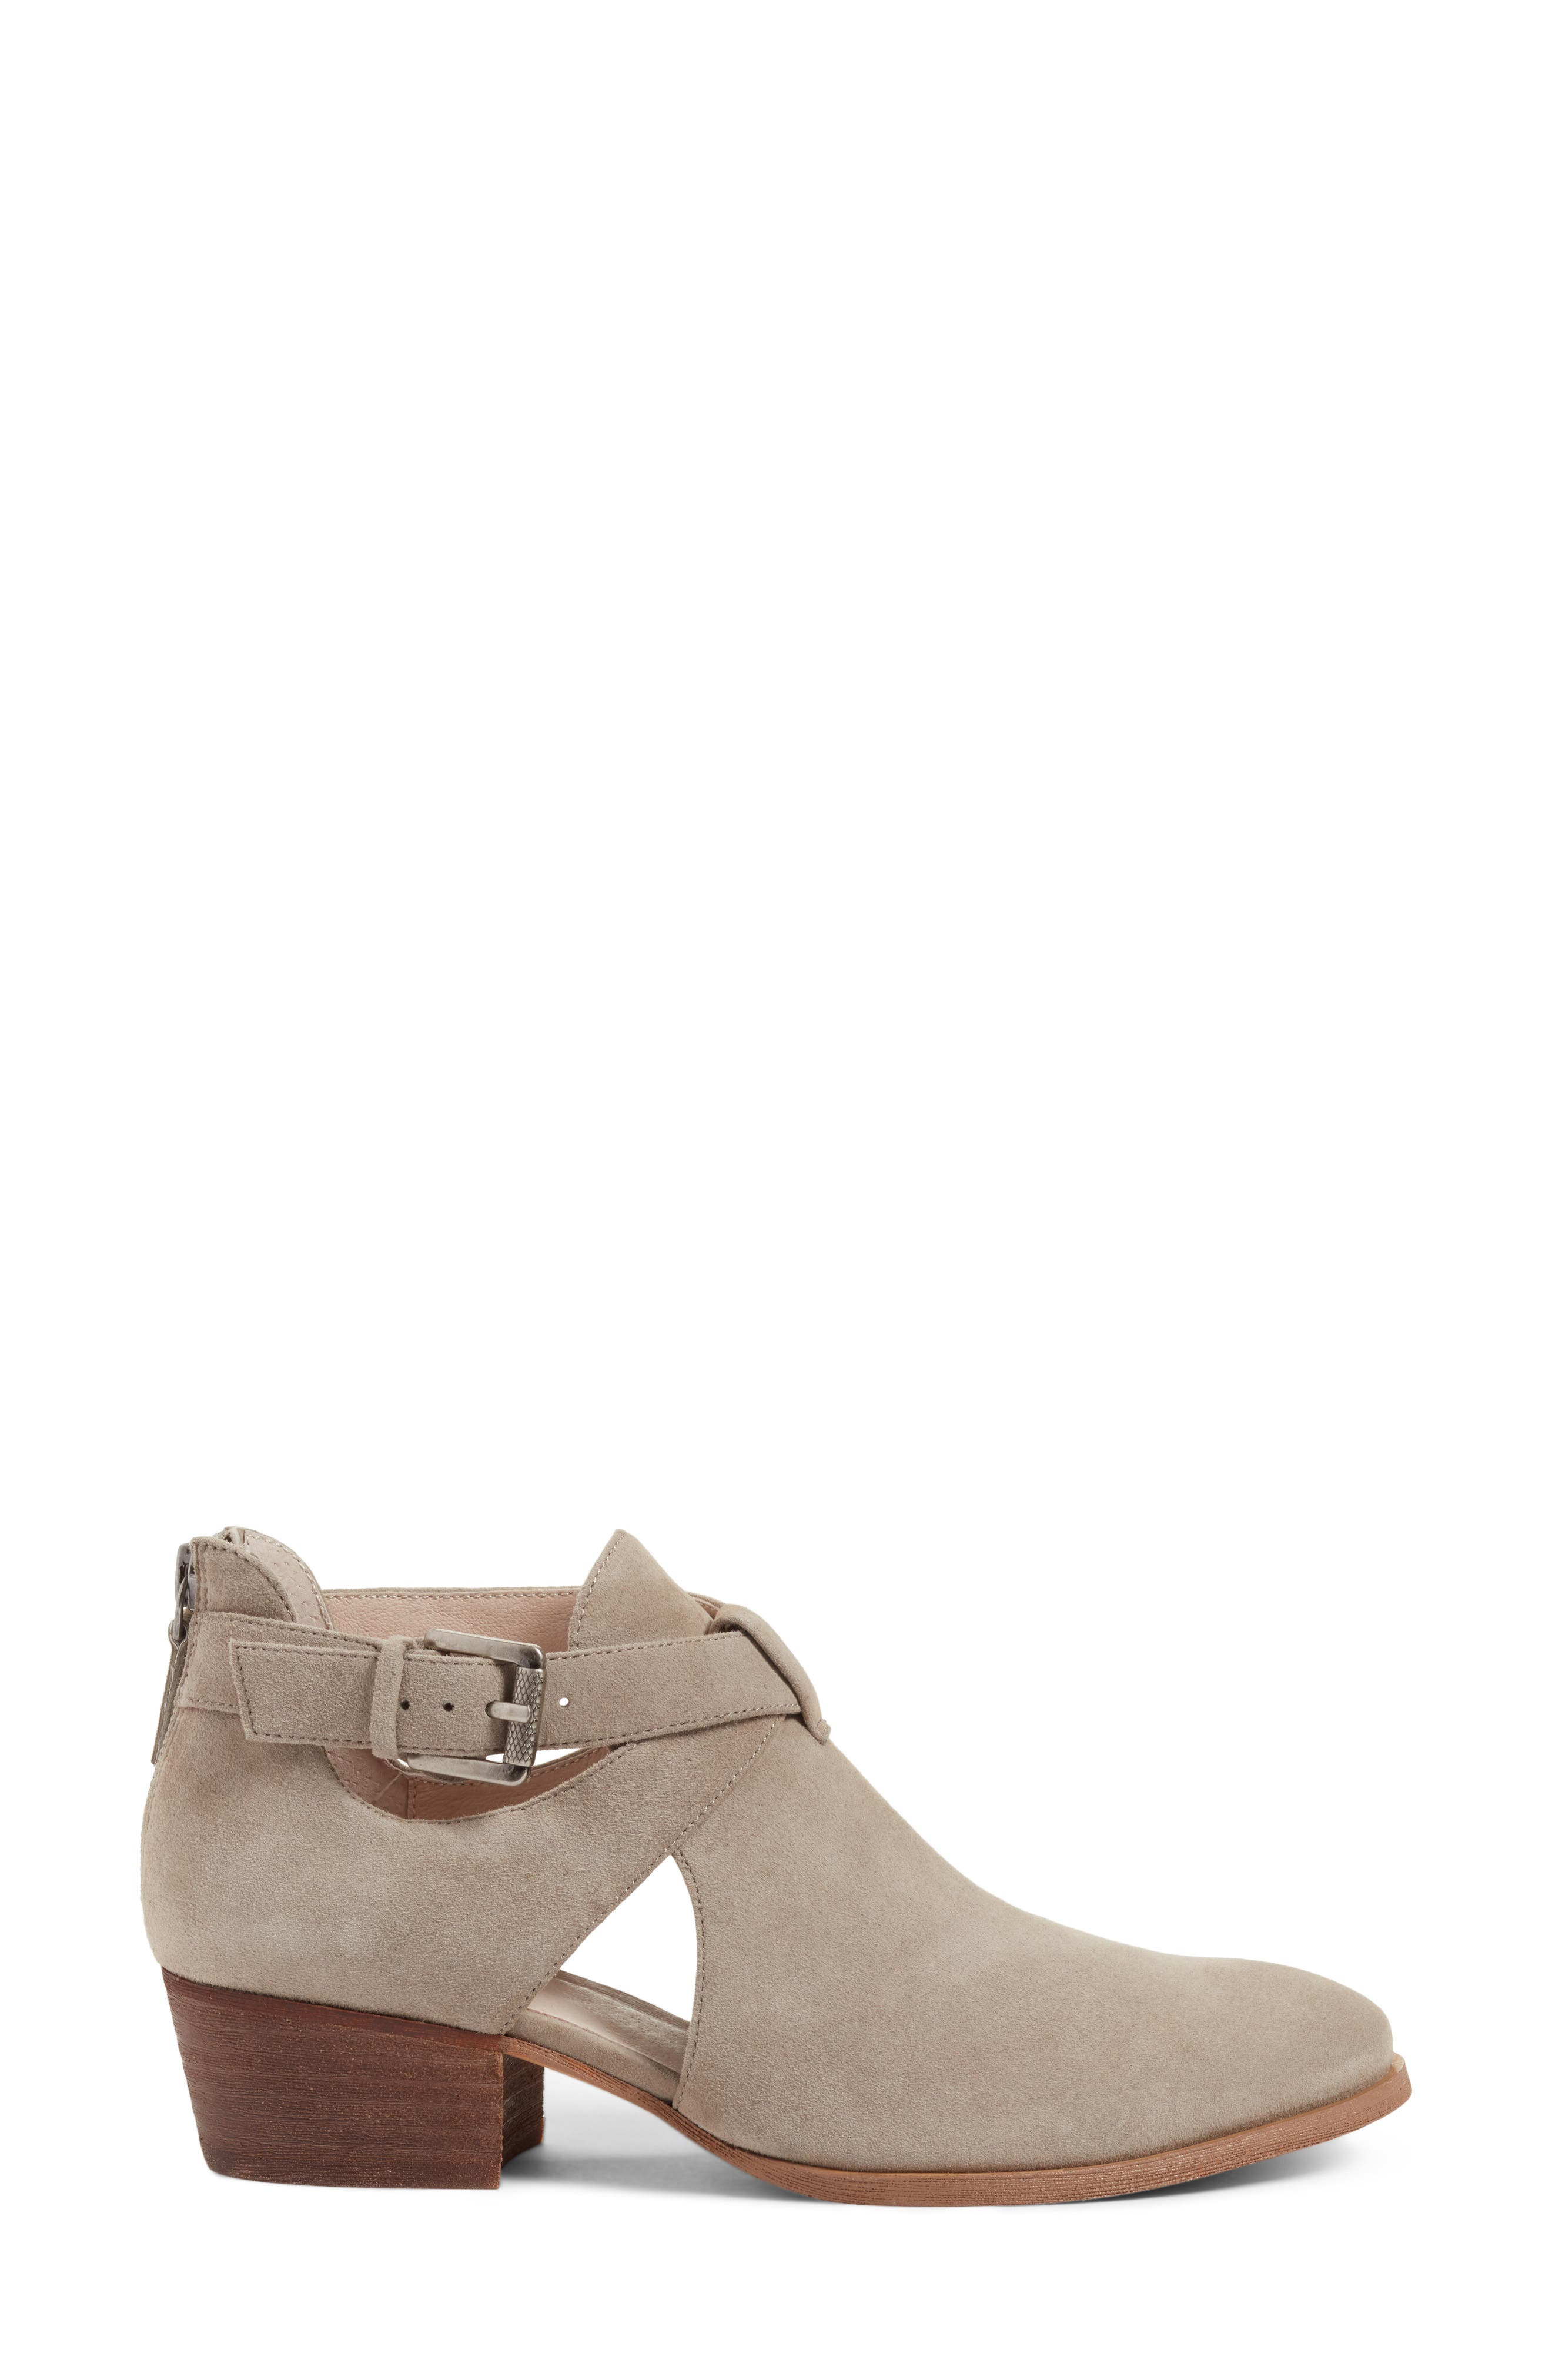 Tina Bootie,                             Alternate thumbnail 3, color,                             Stone Suede